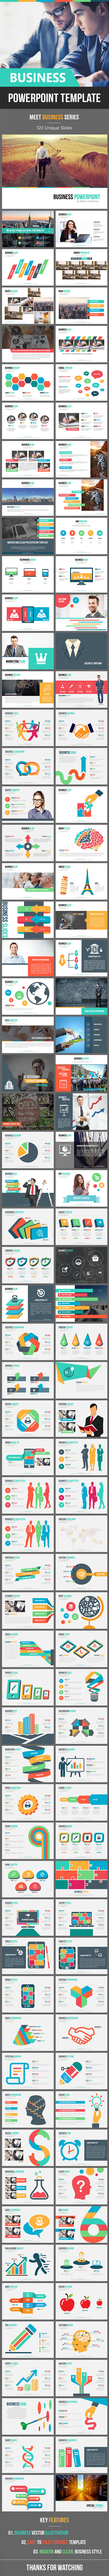 Business Powerpoint Template PowerPoint Template / Theme ...